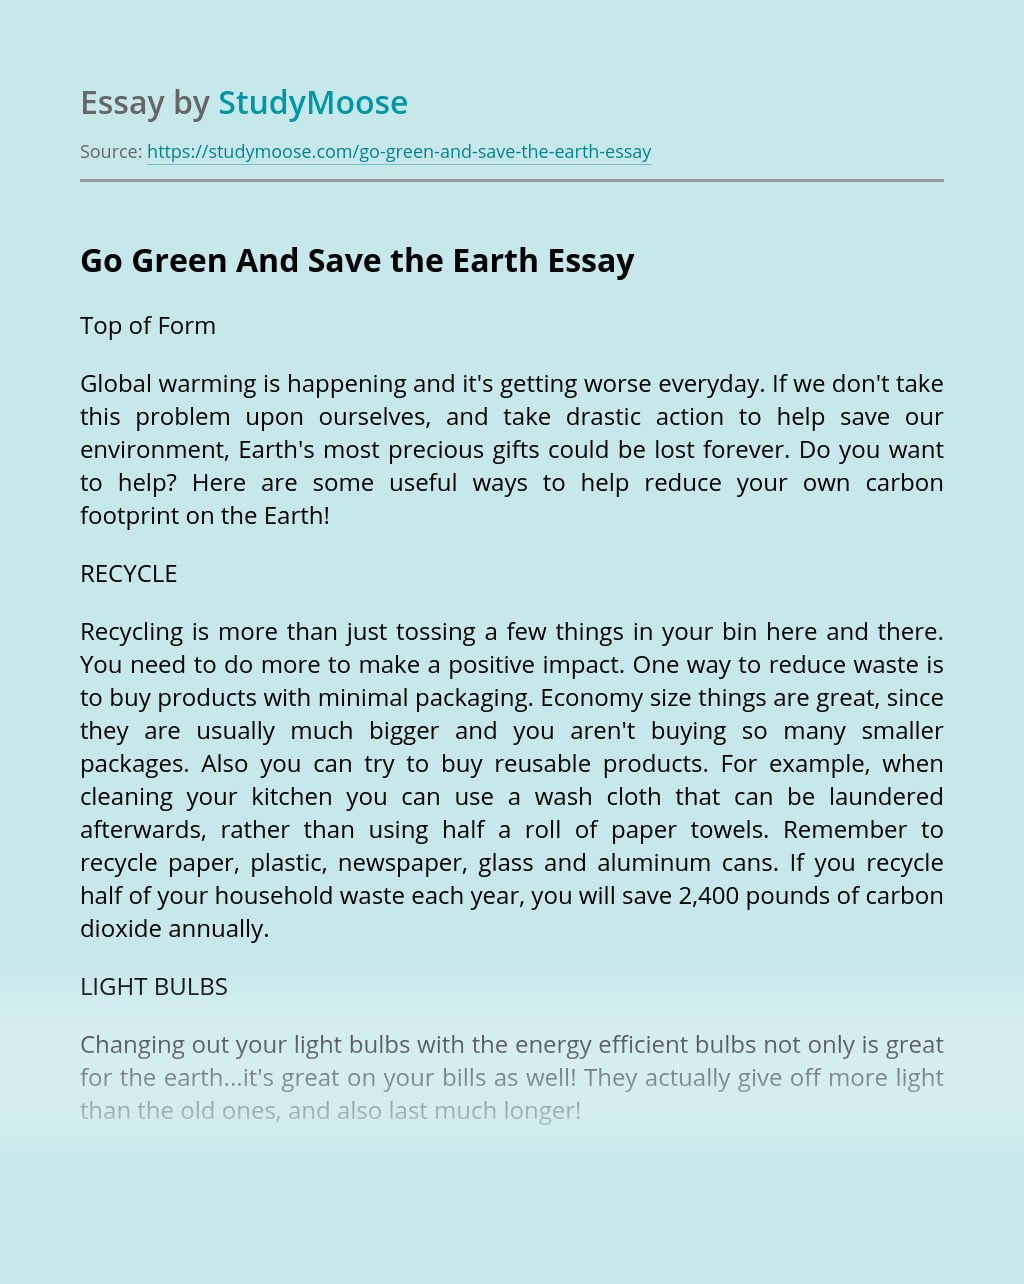 Go Green And Save the Earth